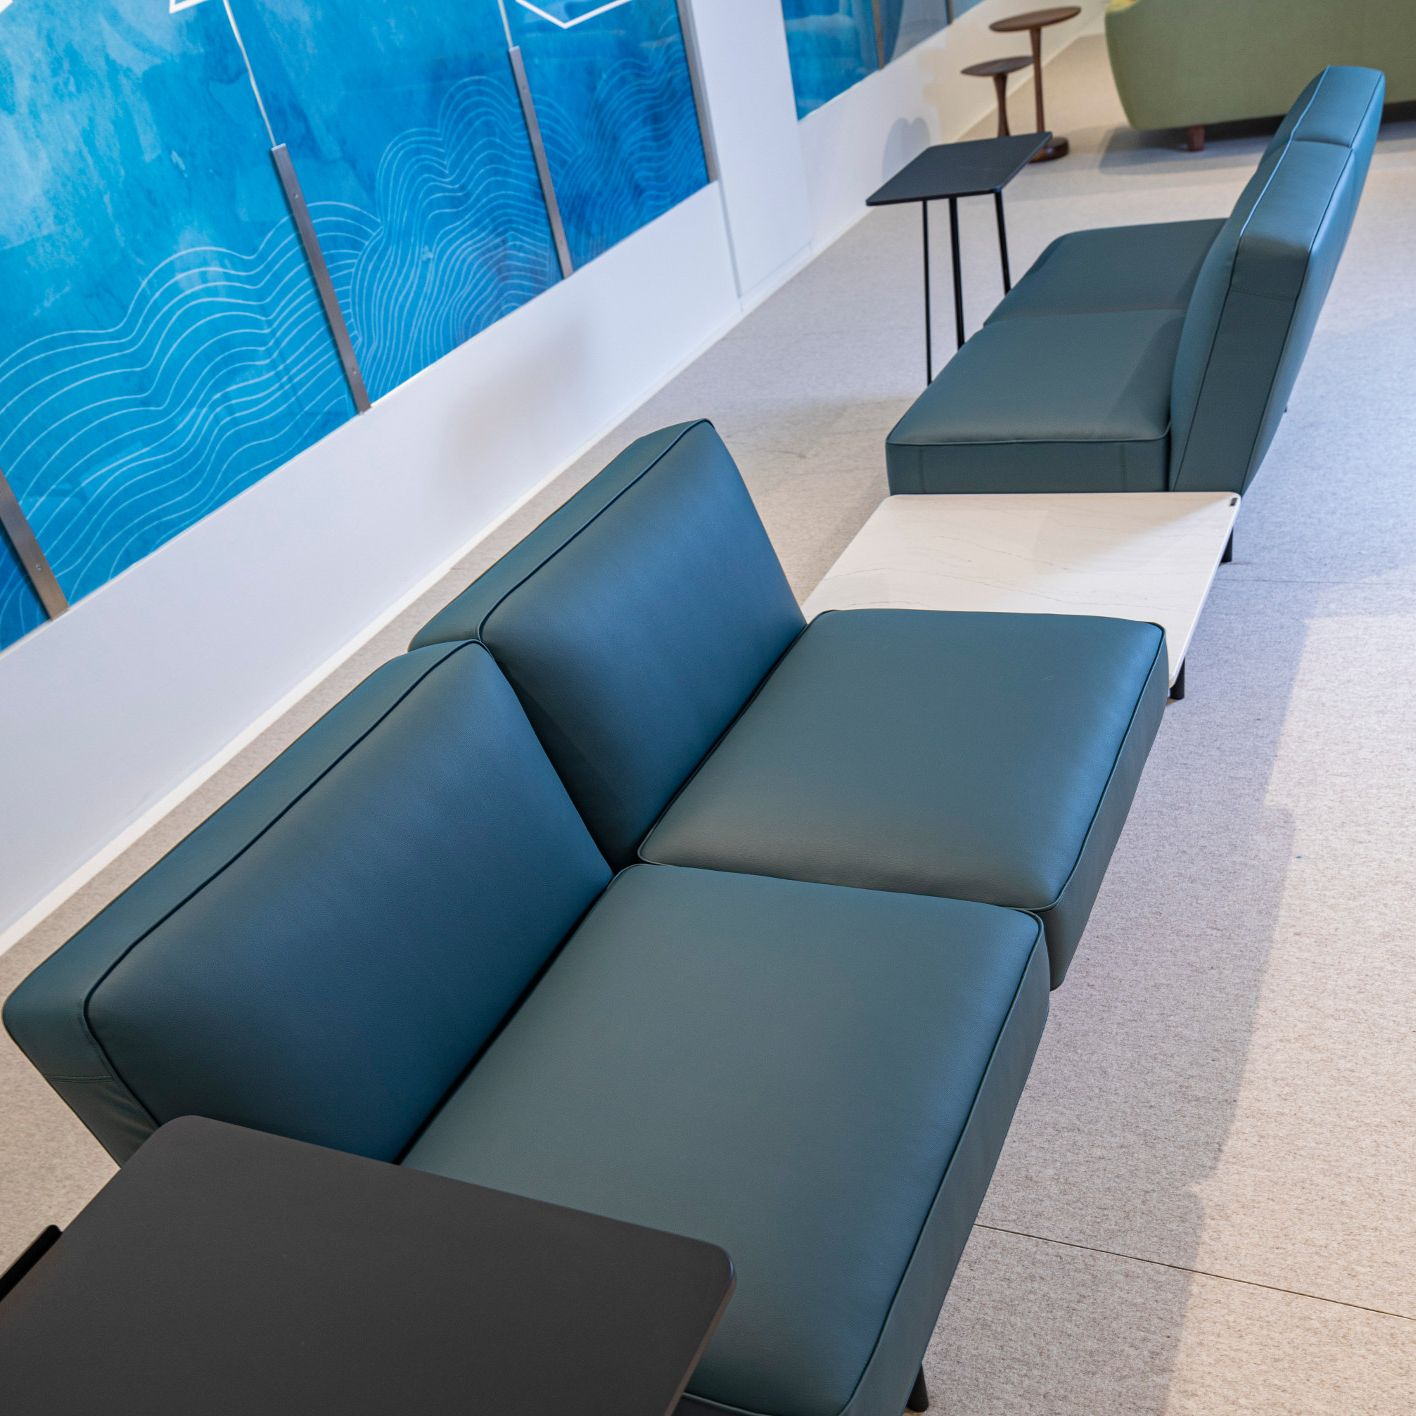 Cambria Ella integrated waiting room table and seating.